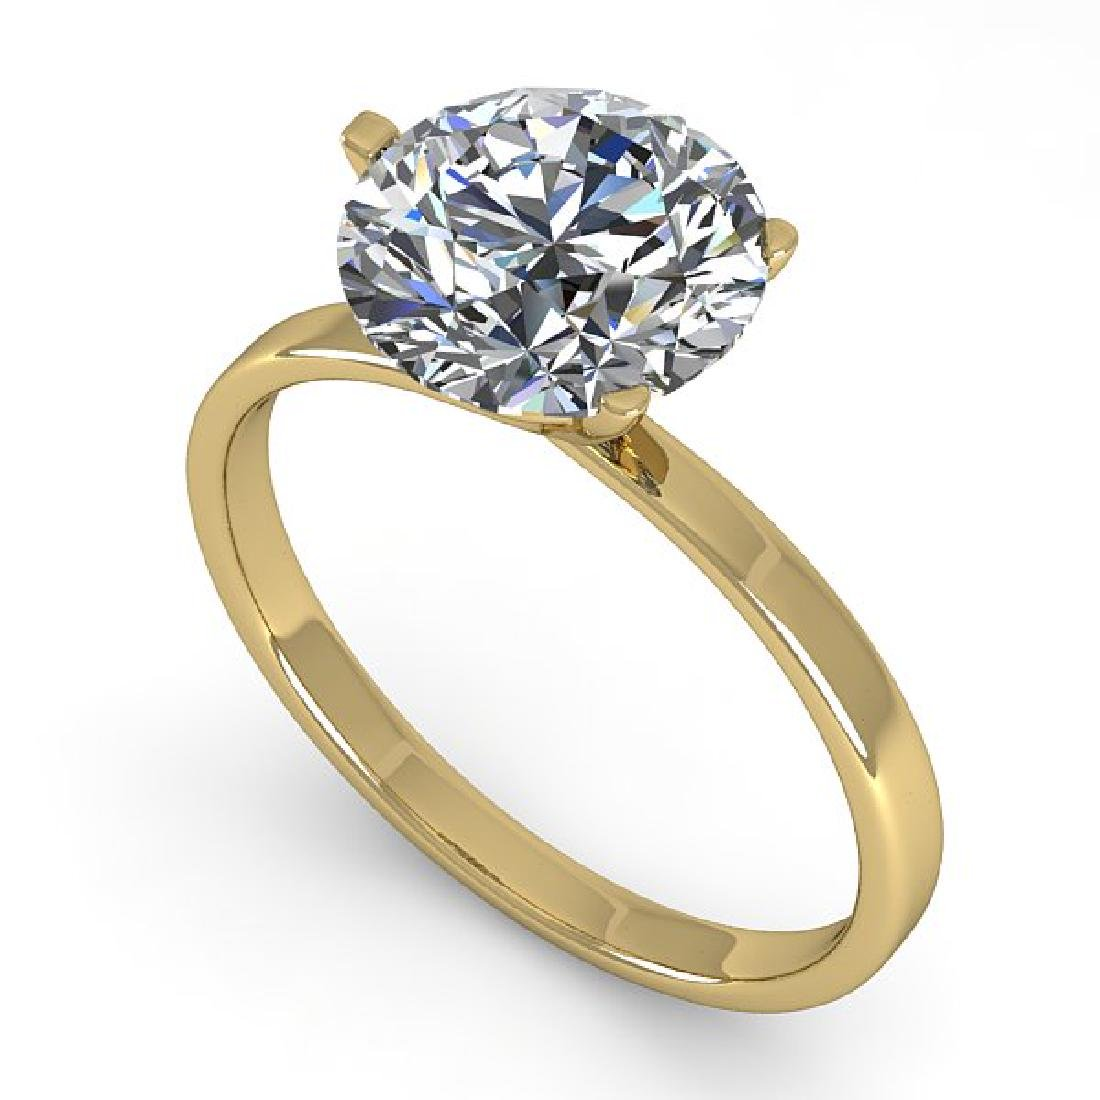 2.01 CTW Certified VS/SI Diamond Engagement Ring 14K